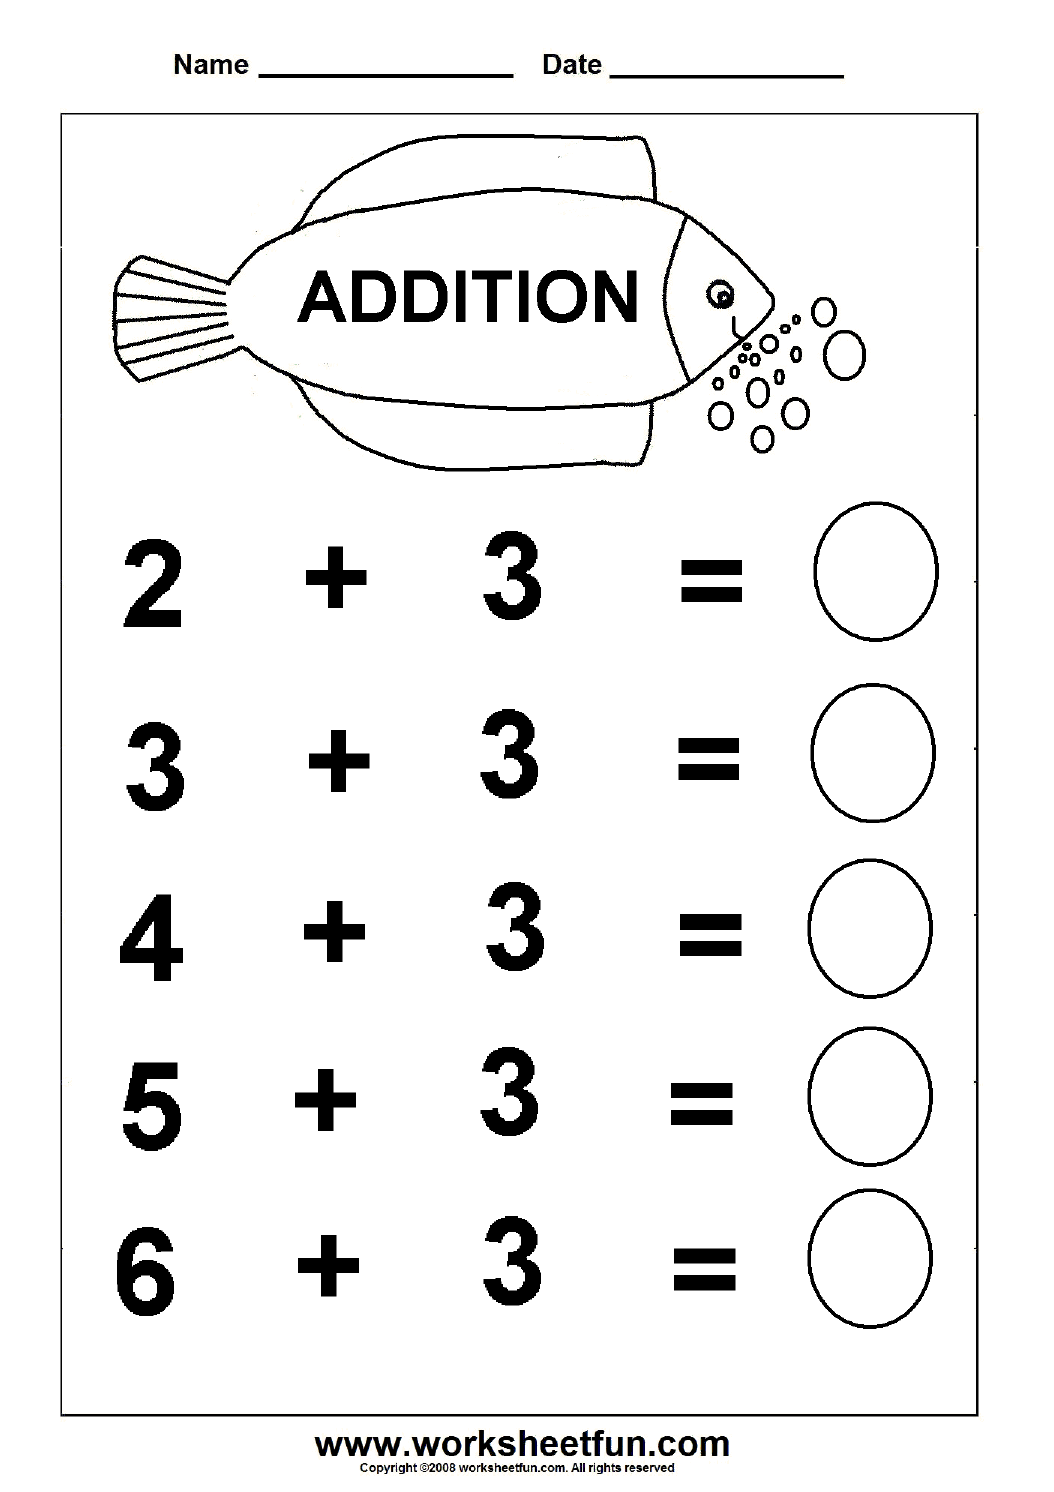 Free Worksheet Basic Math Addition Worksheets addition basic facts free printable worksheets beginner 6 kindergarten worksheets